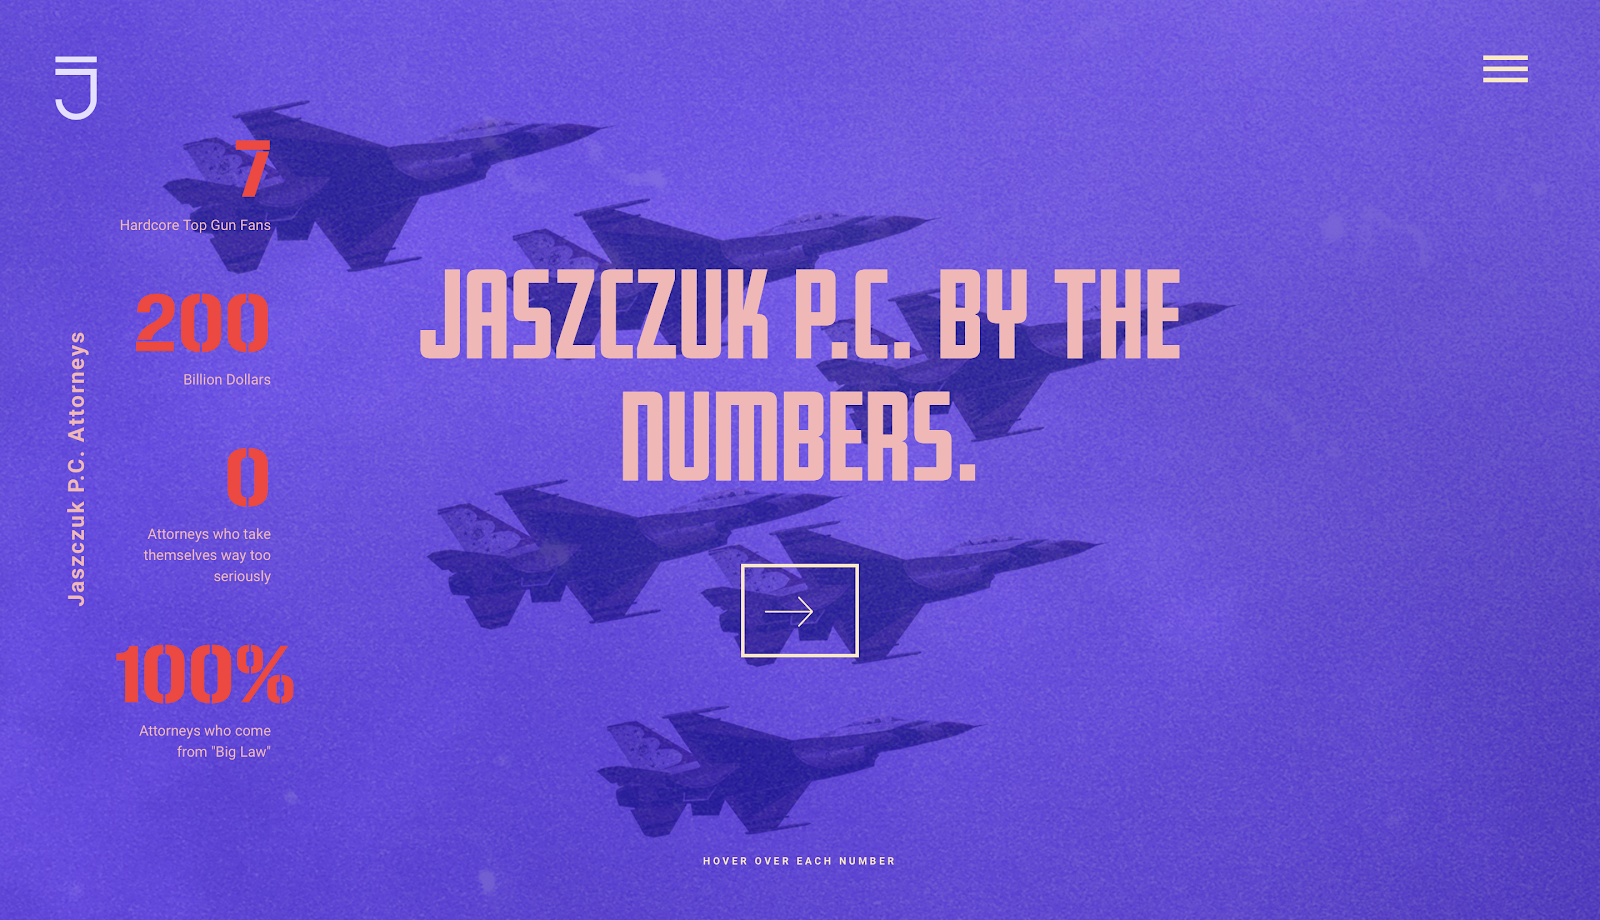 Jaszczuk P.C. Attorneys by the numbers